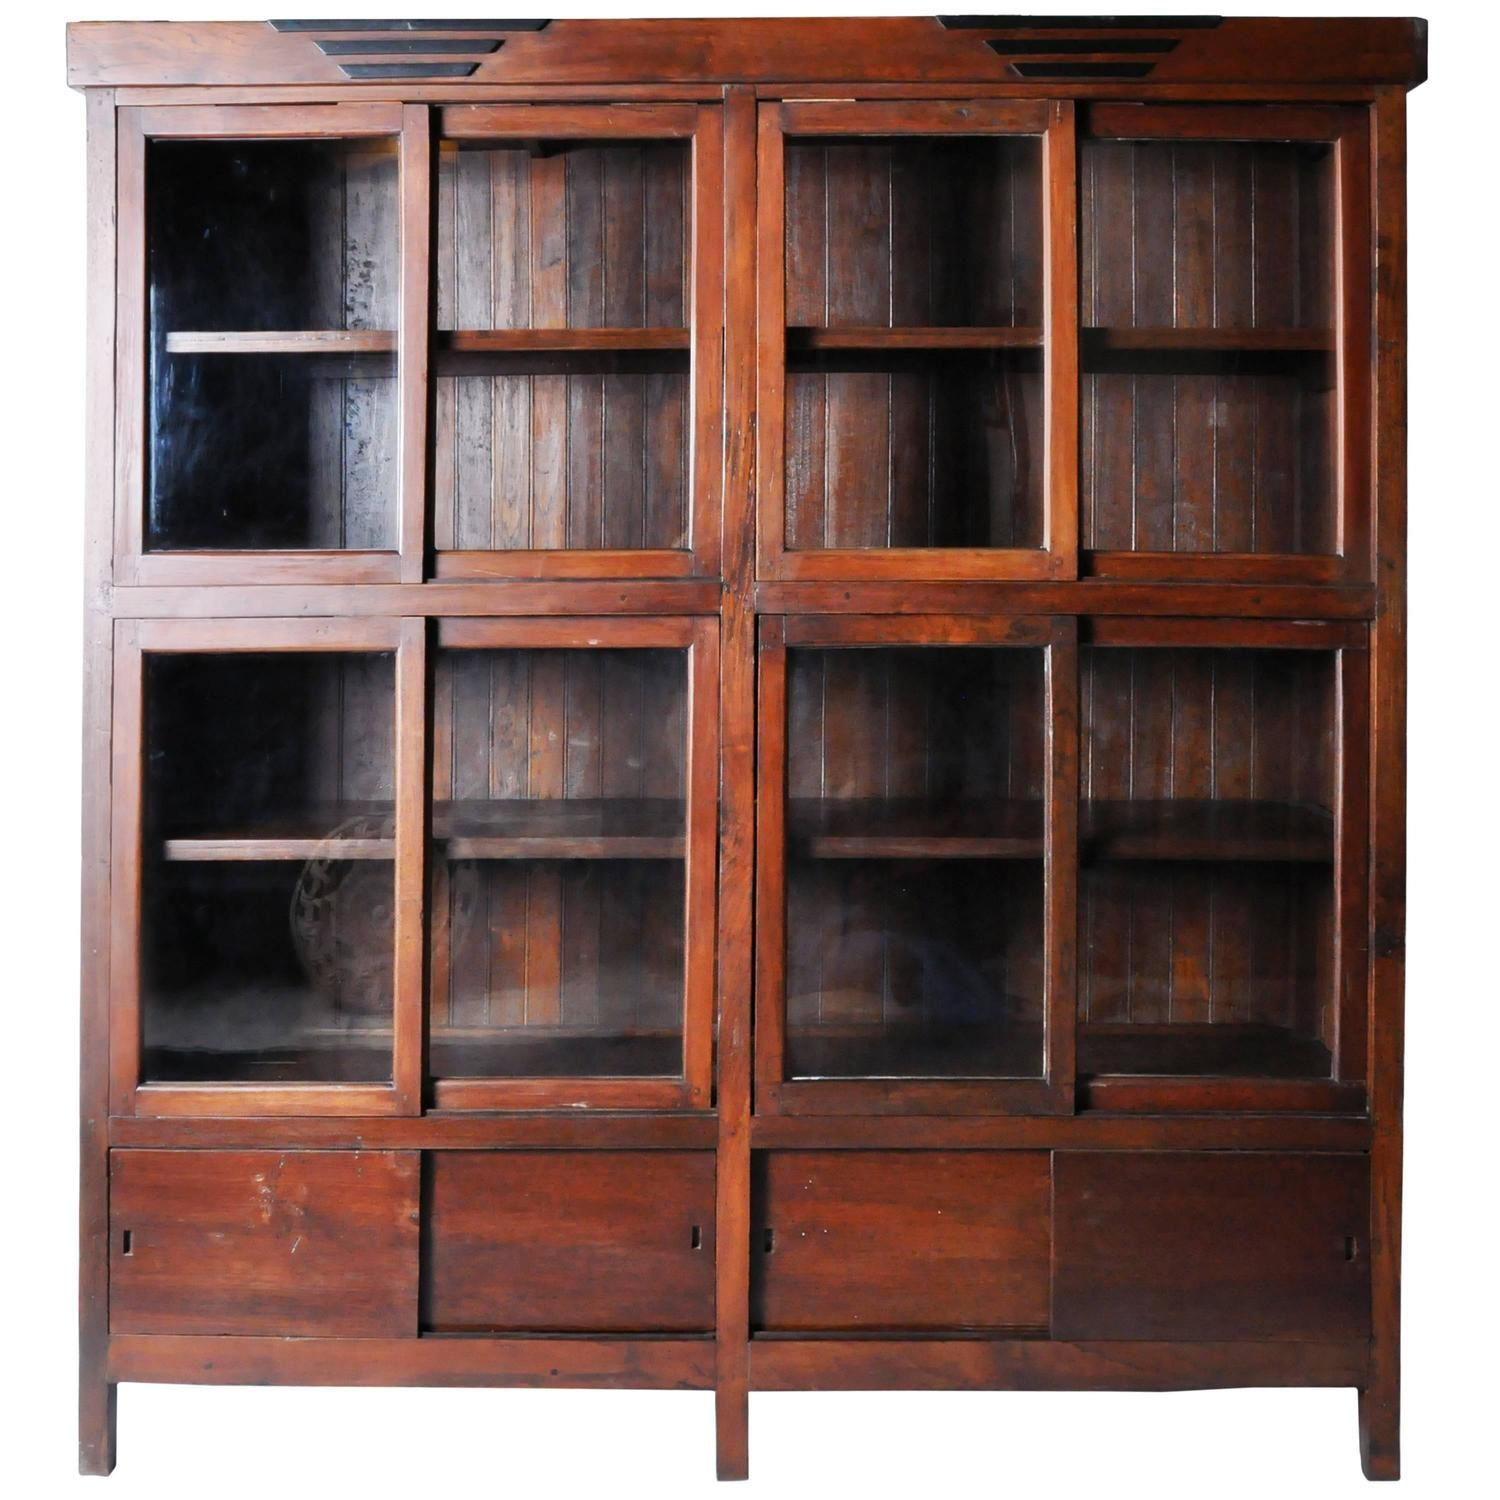 British Colonial Style Bookcase. British Colonial Style Bookcase   British colonial style  British